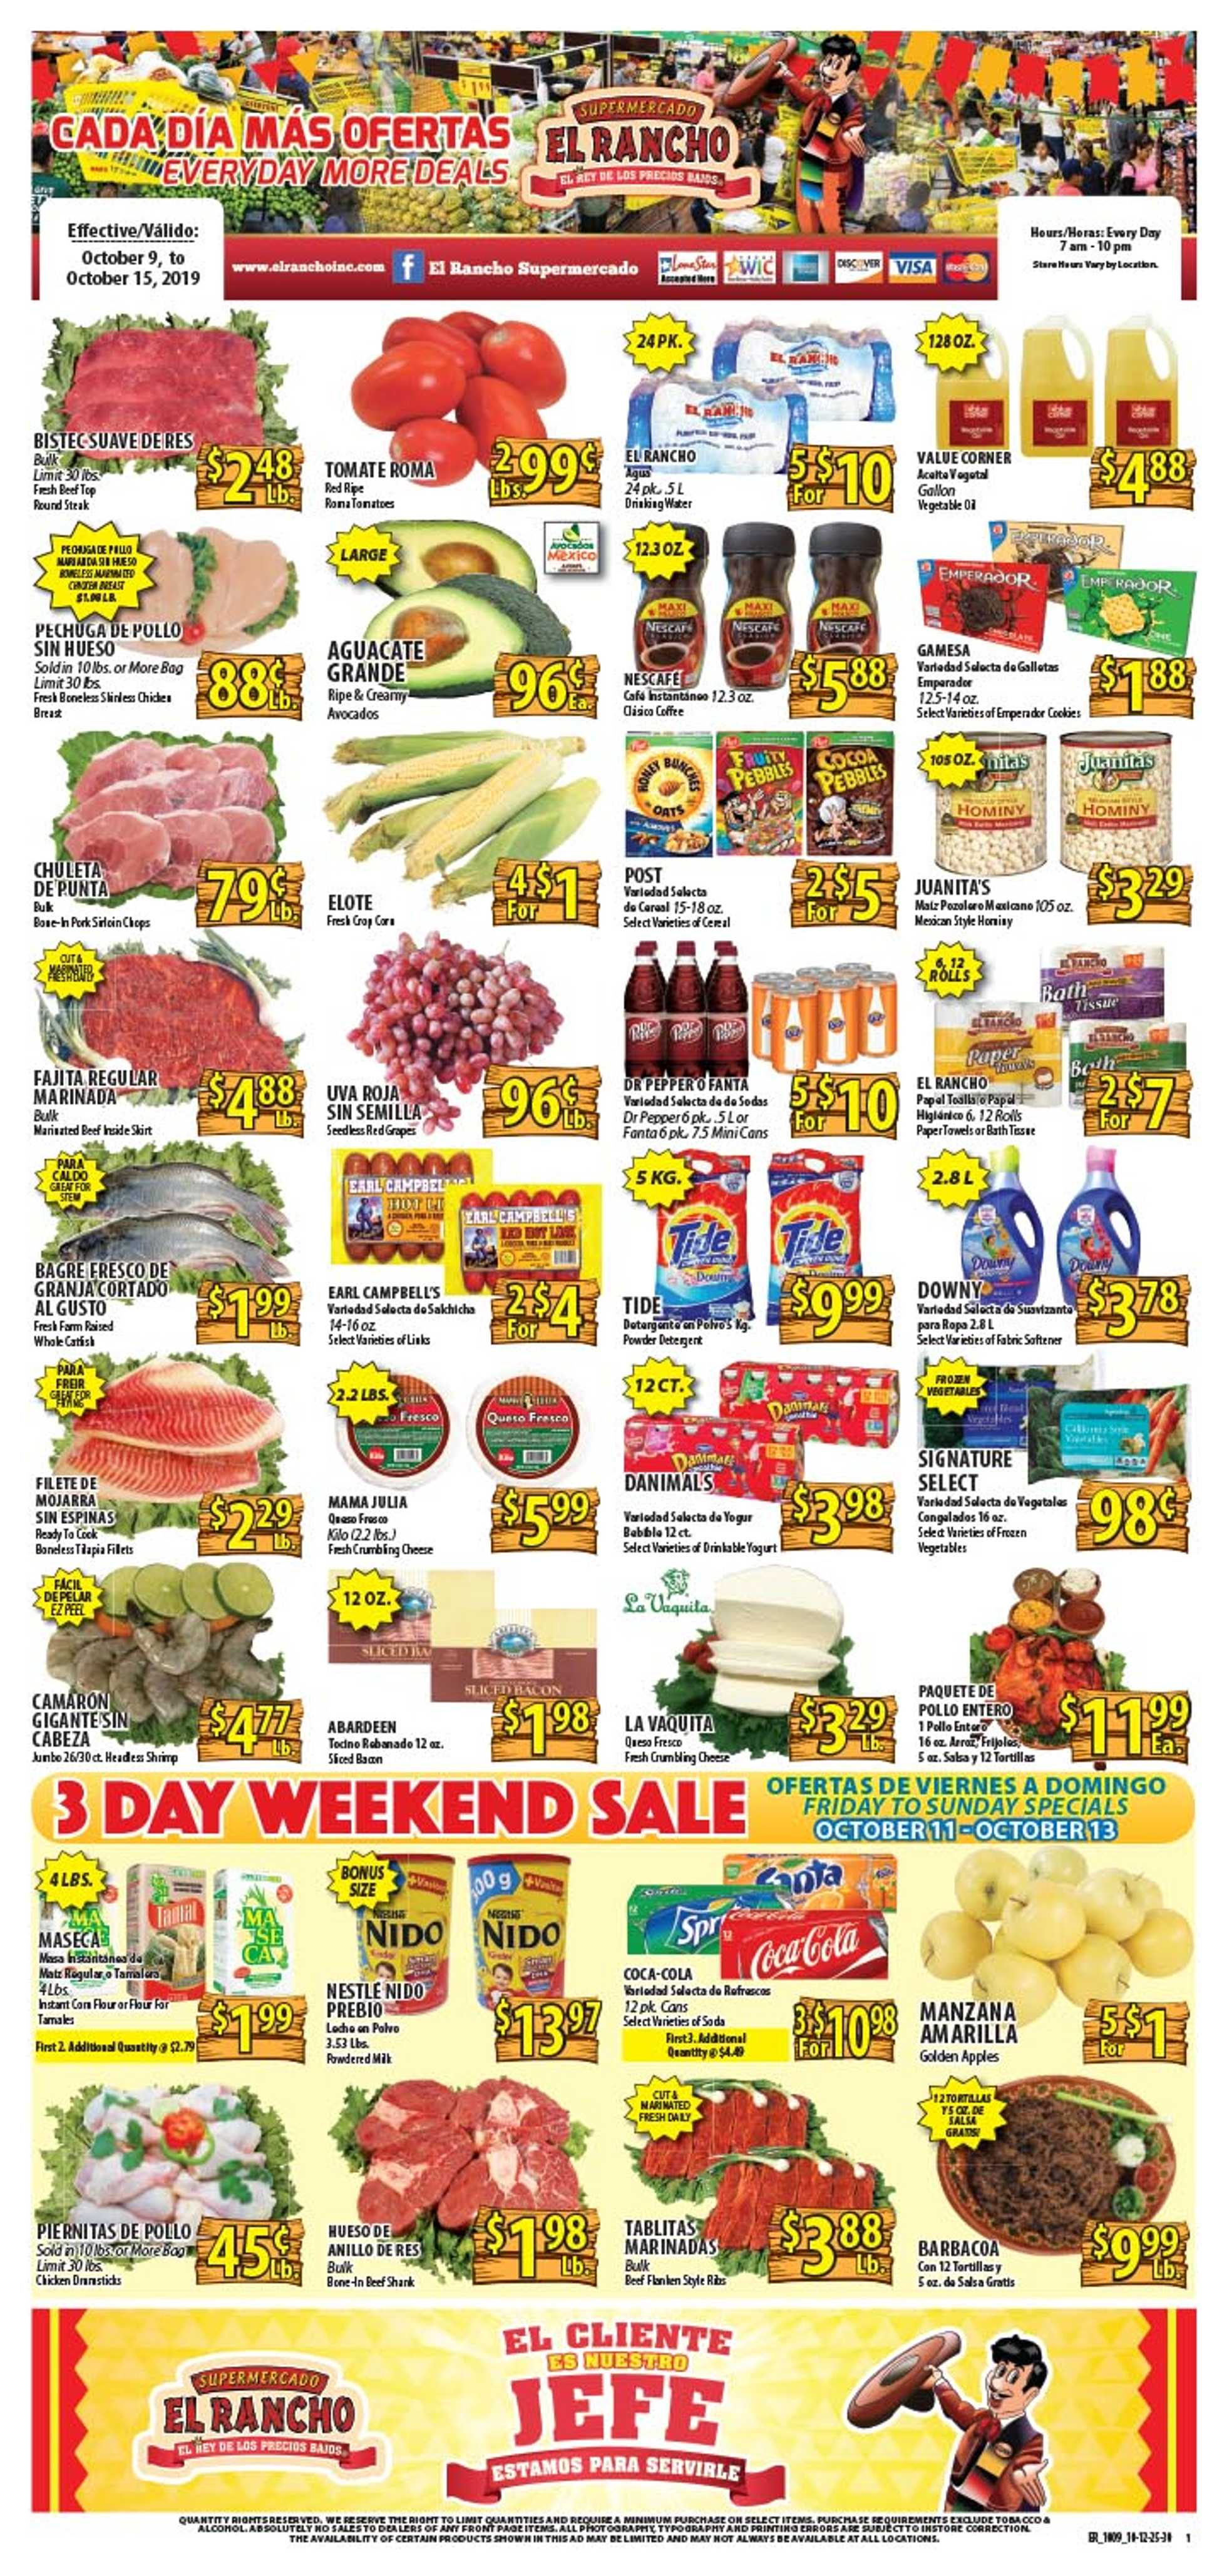 El Rancho Supermarket - deals are valid from 10/09/19 to 10/15/19 - page 1.